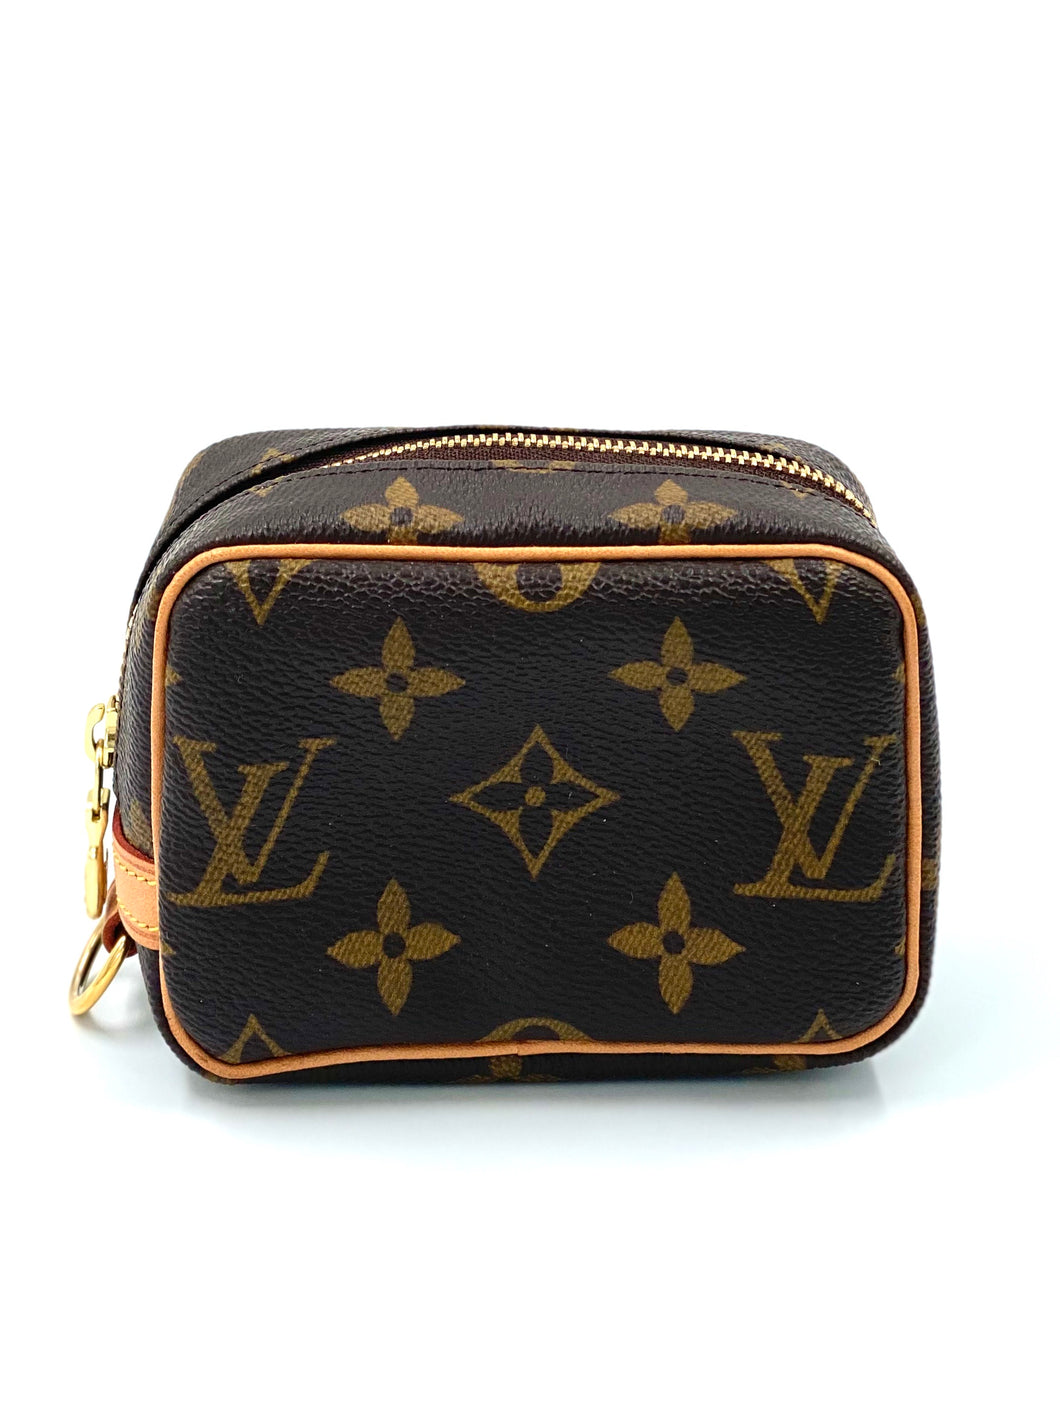 Louis Vuitton Trousse Wapity Monogram Clutch